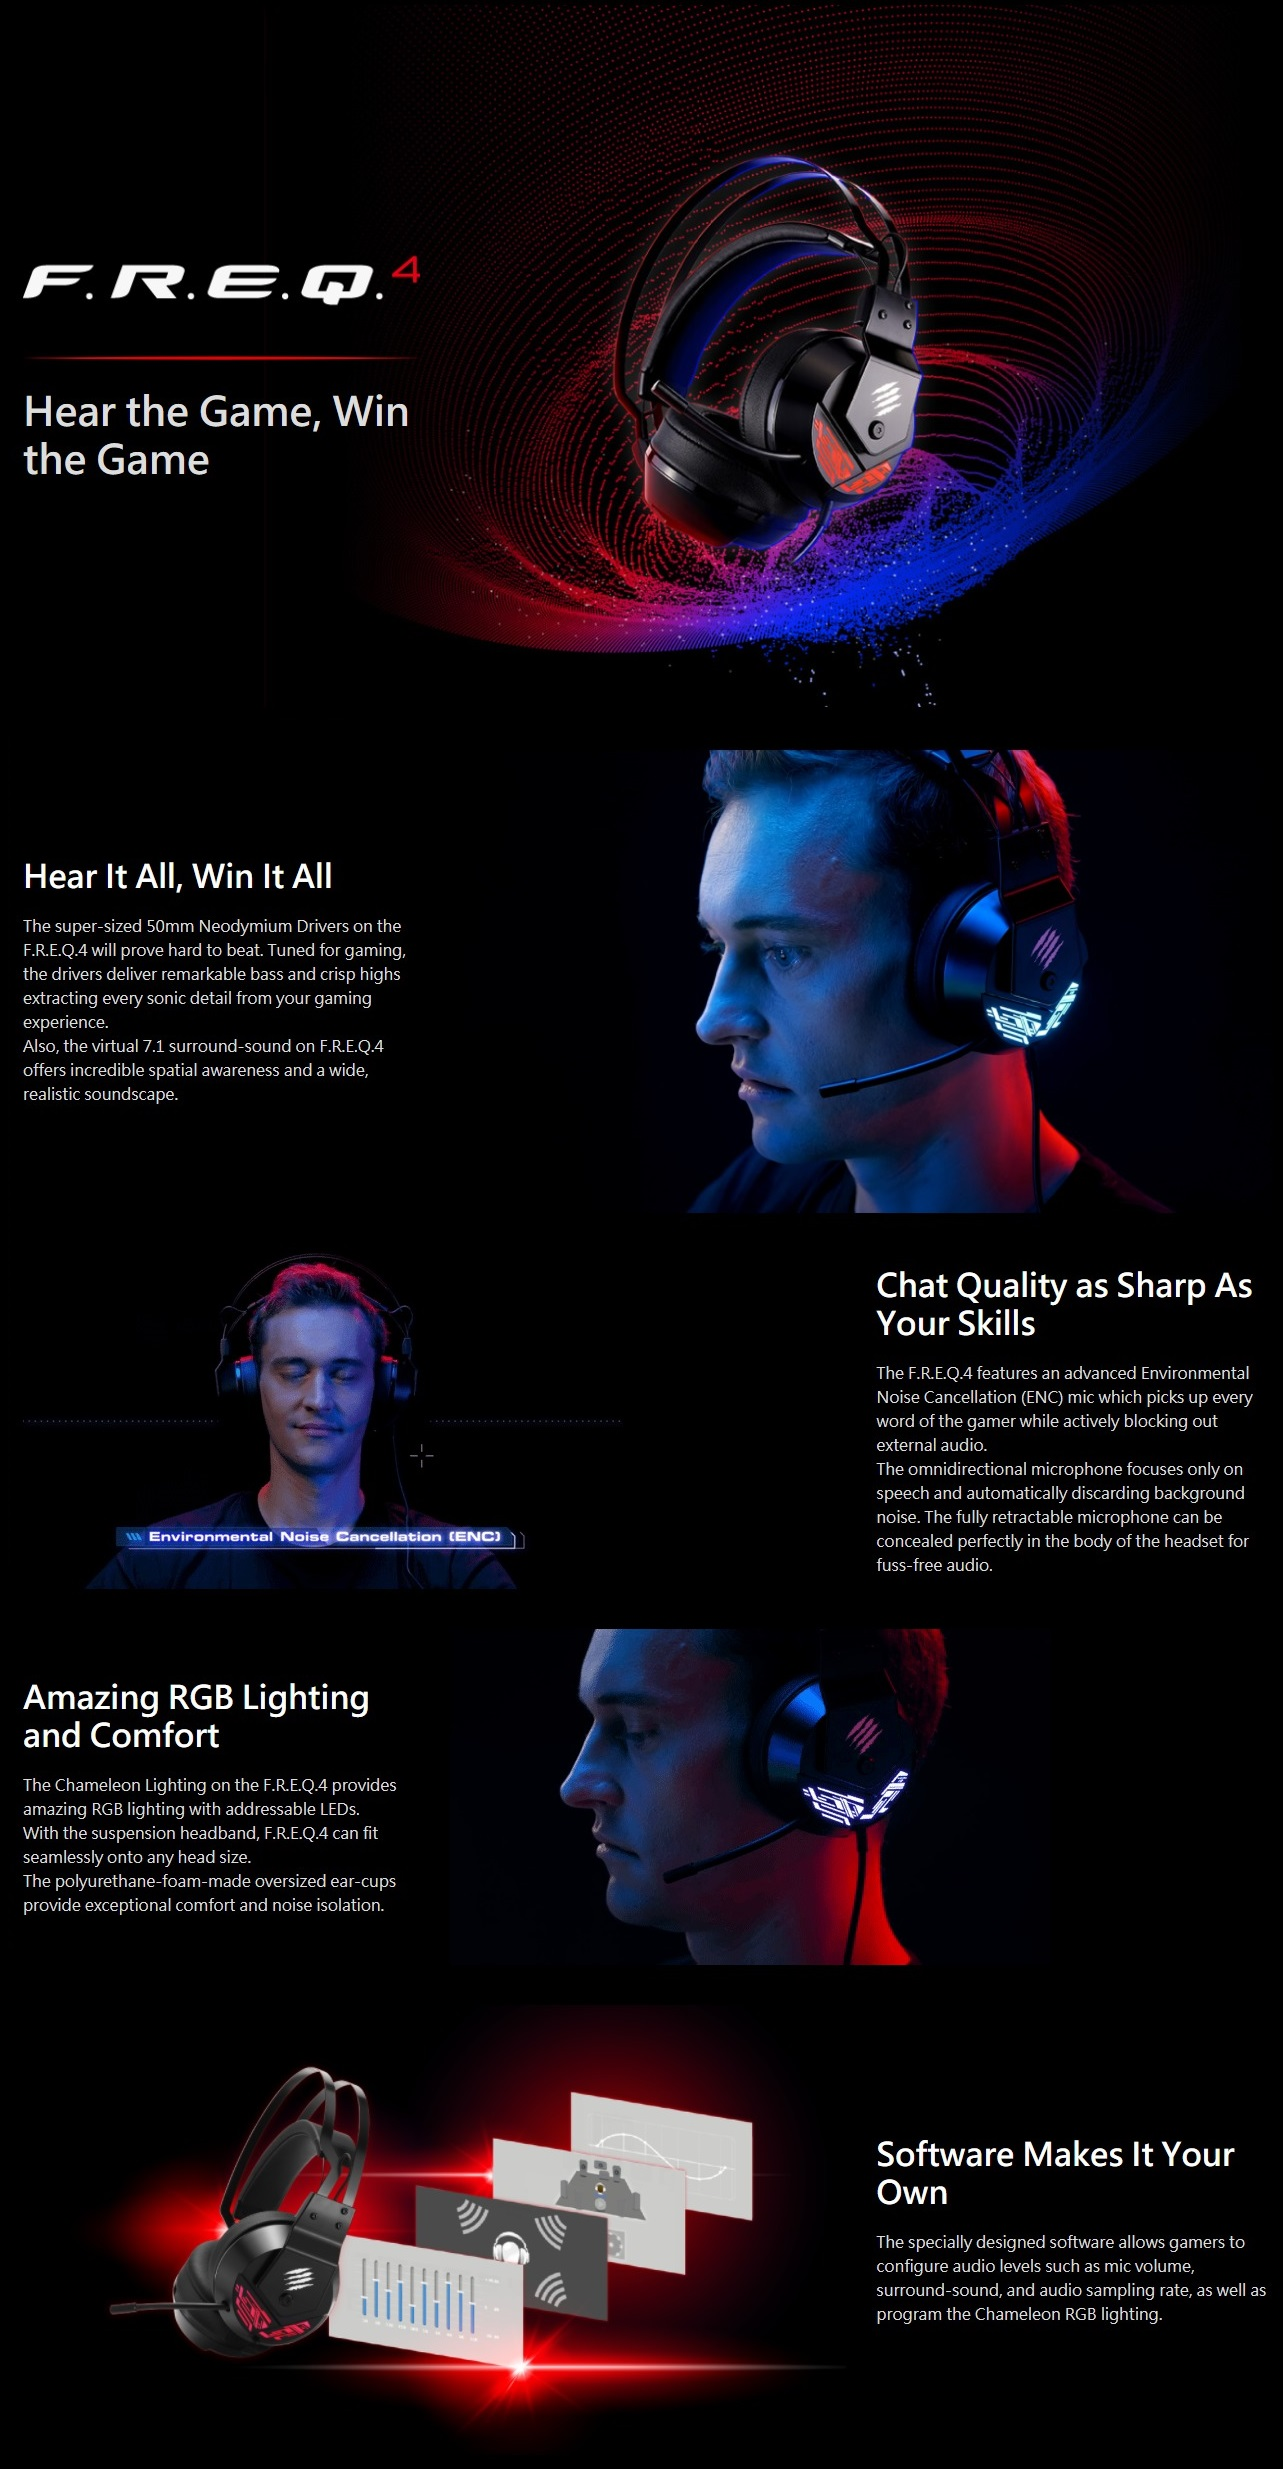 A large marketing image providing additional information about the product Mad Catz F.R.E.Q. 4 Gaming Headset Black - Additional alt info not provided